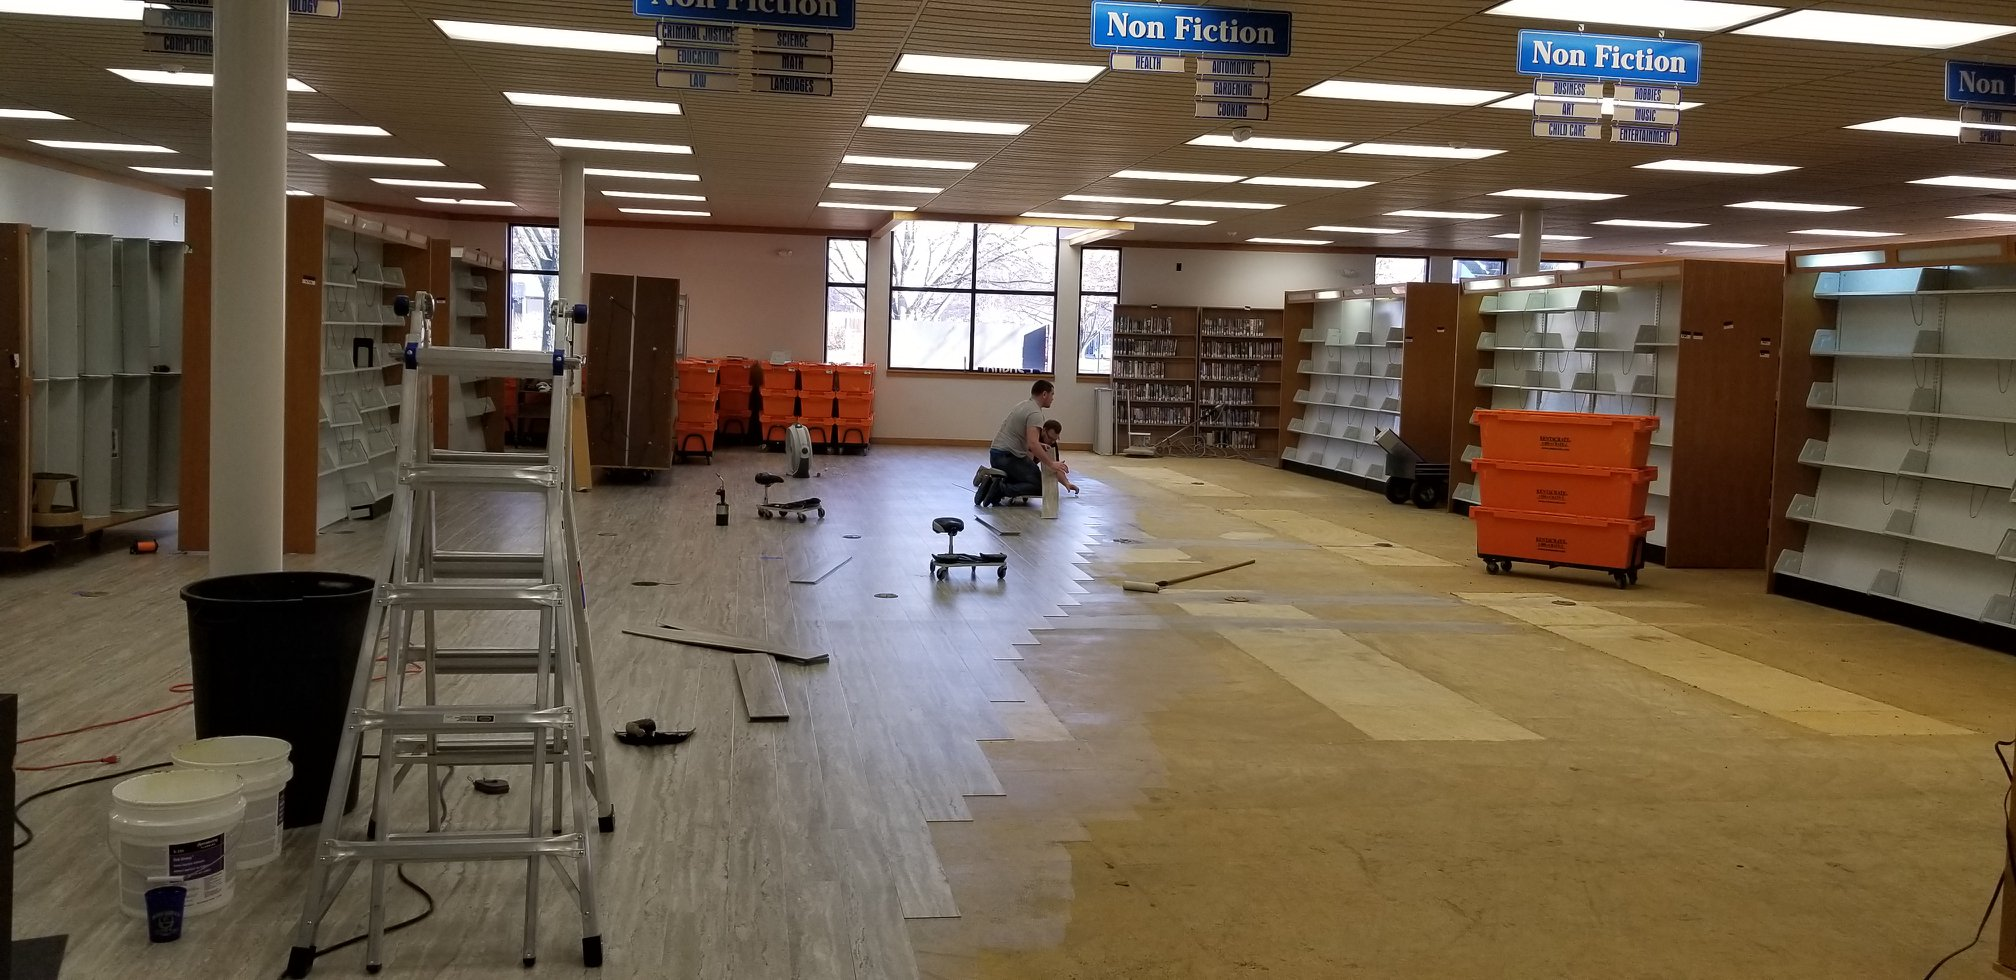 Lebanon library to remain closed next week as flooring replacement continues